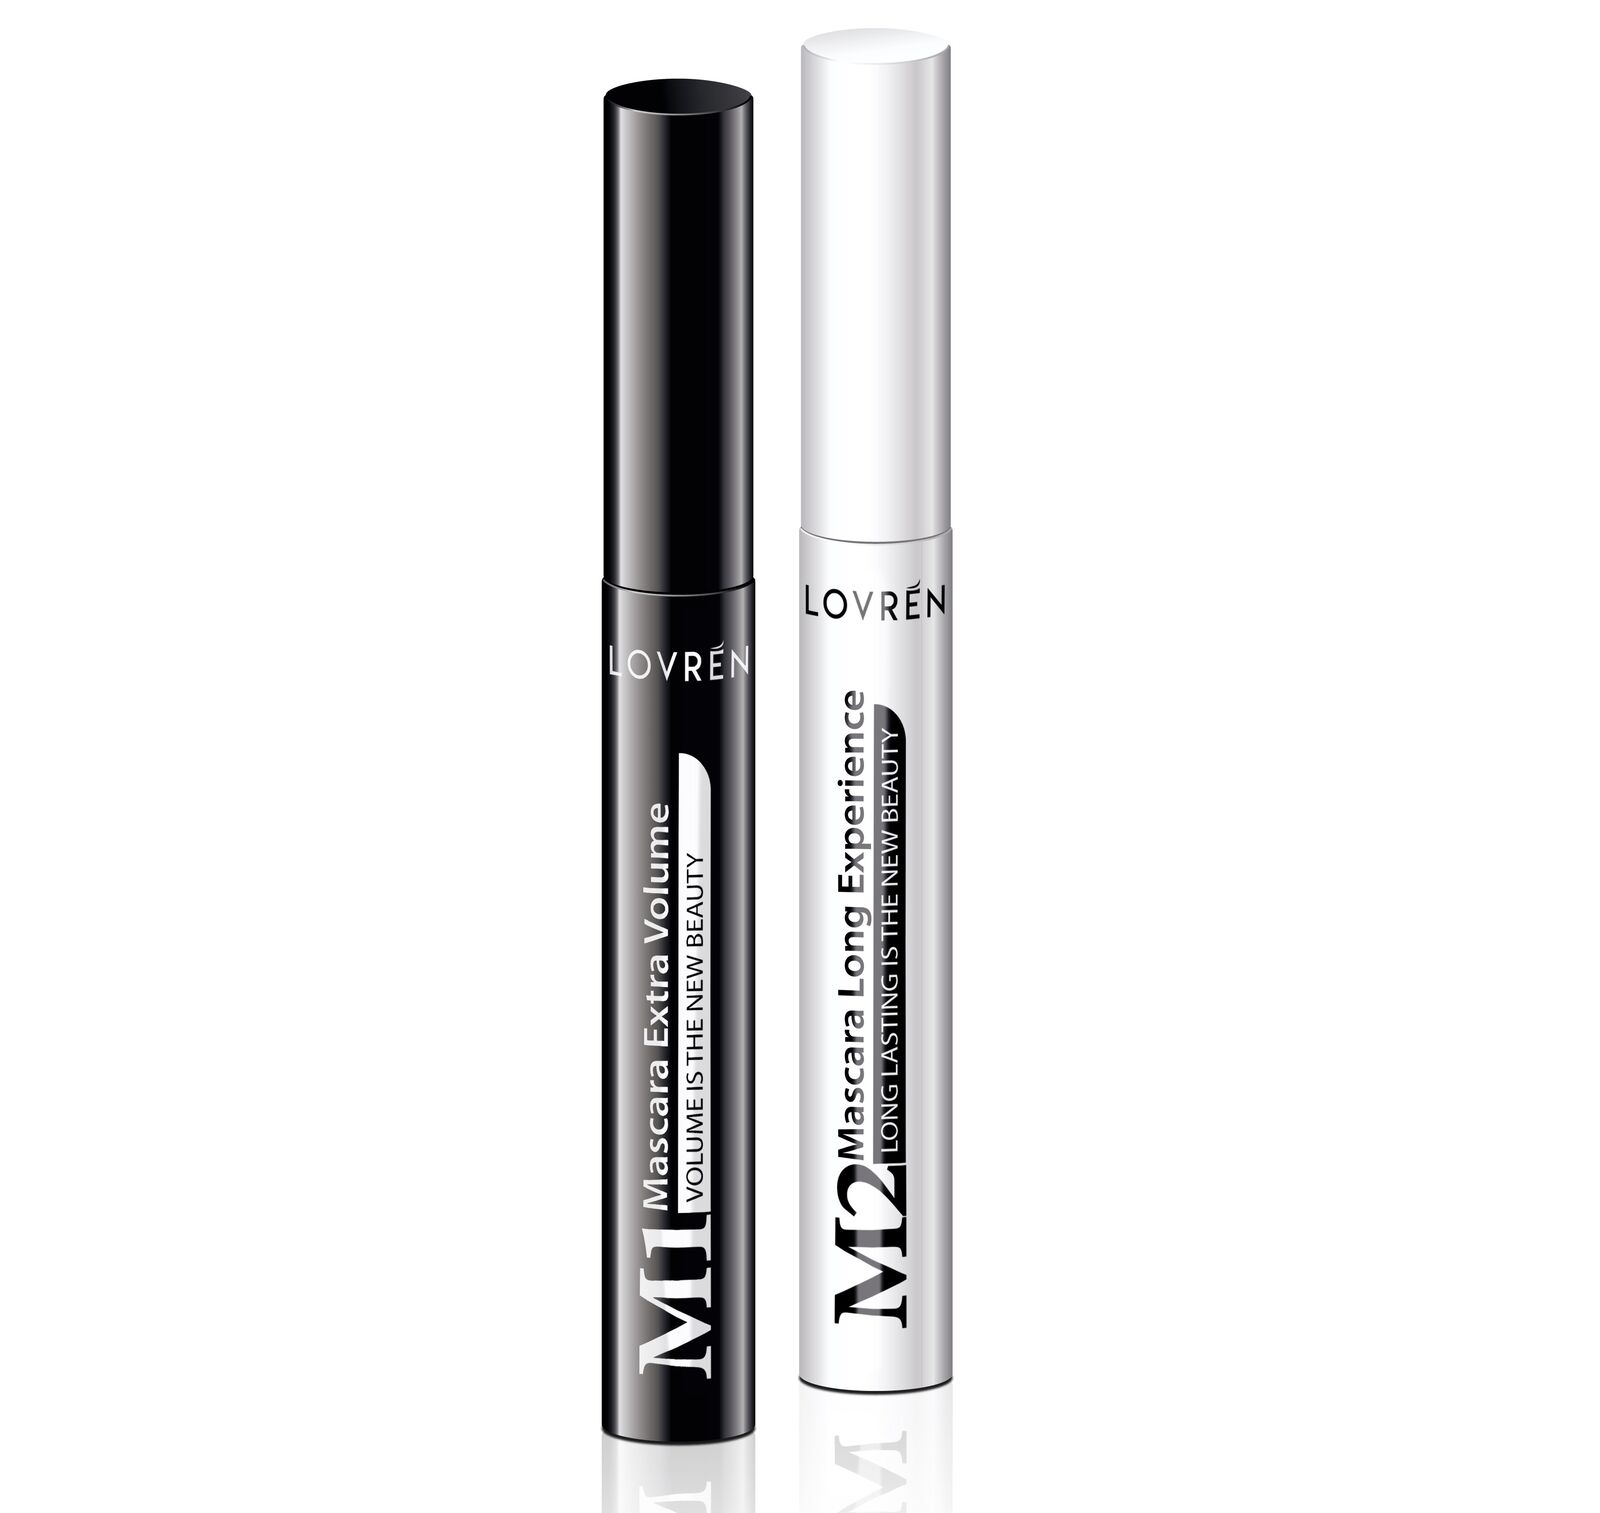 Lovren Mascara M2 Long Experience 10ml